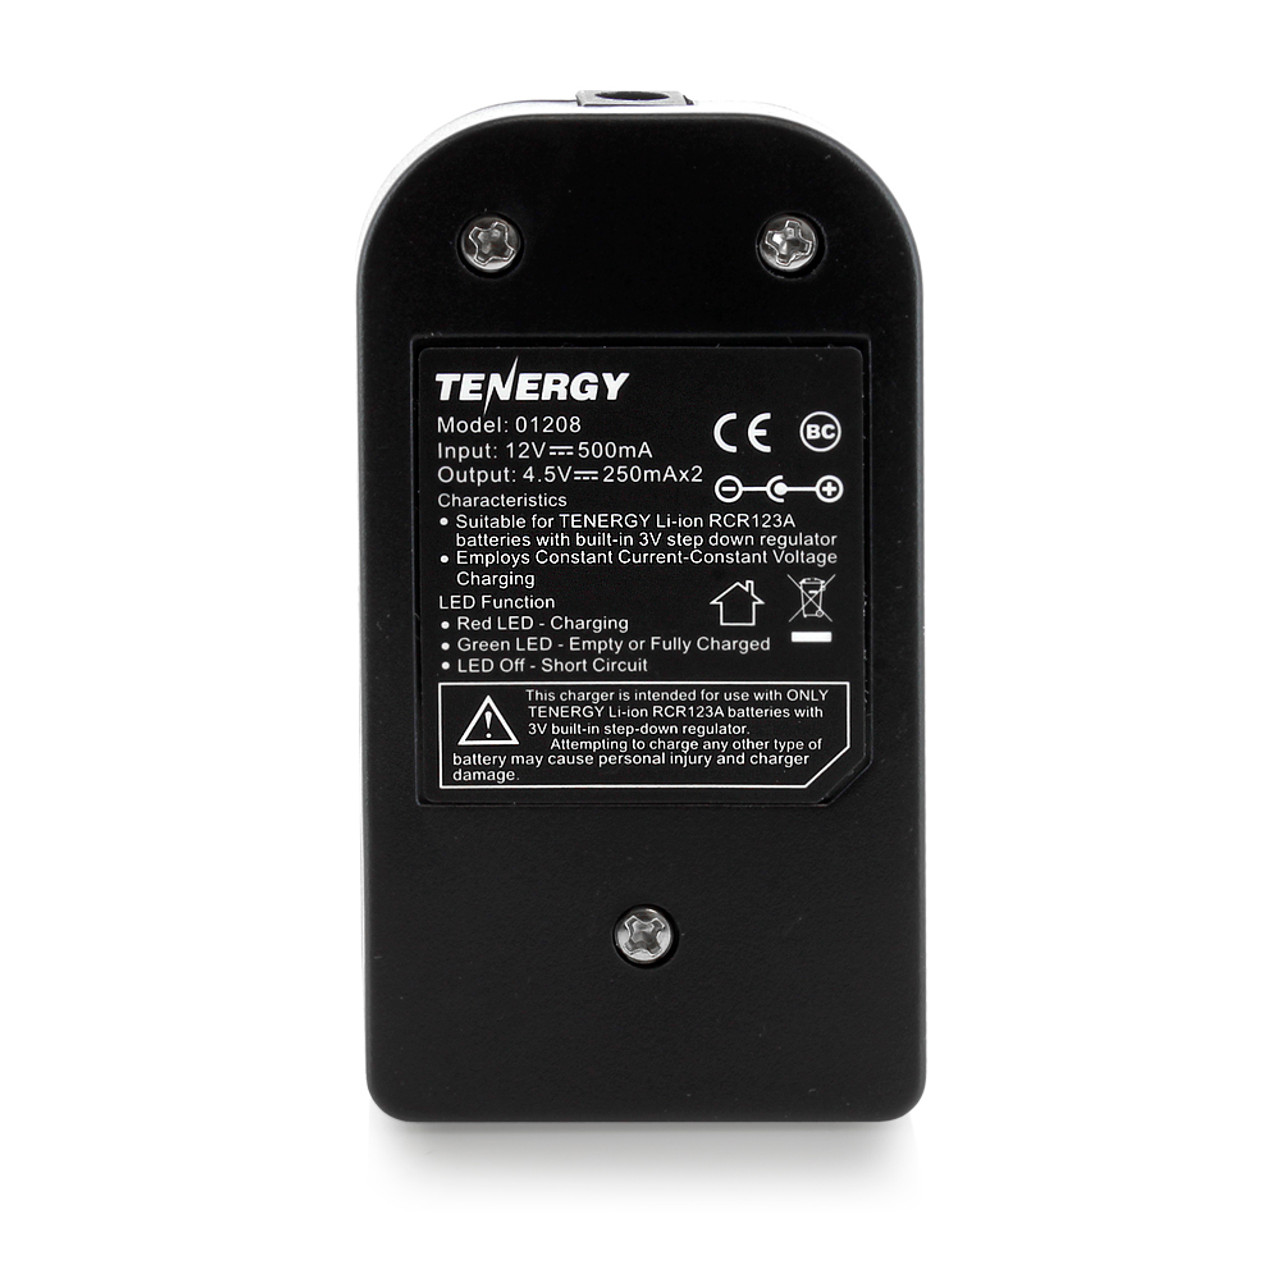 Tenergy 2-Bay Smart Charger for RCR123A 3.0V 600mAh Li-ion Rechargeable Batteries